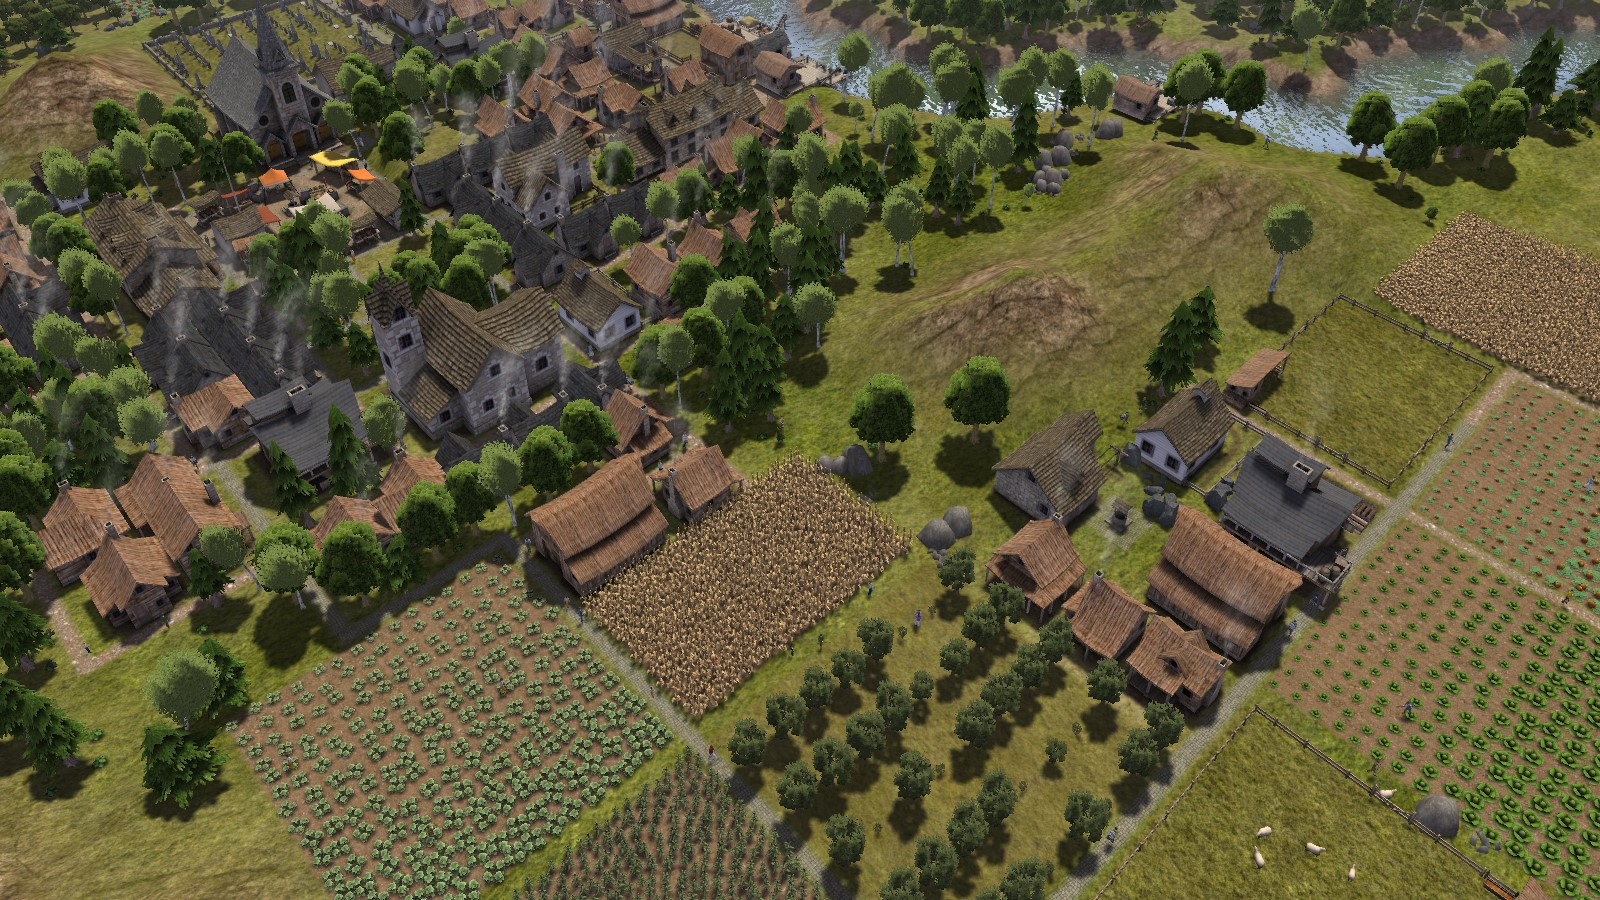 Banished Screenshots - Video Game News, Videos, and File ...